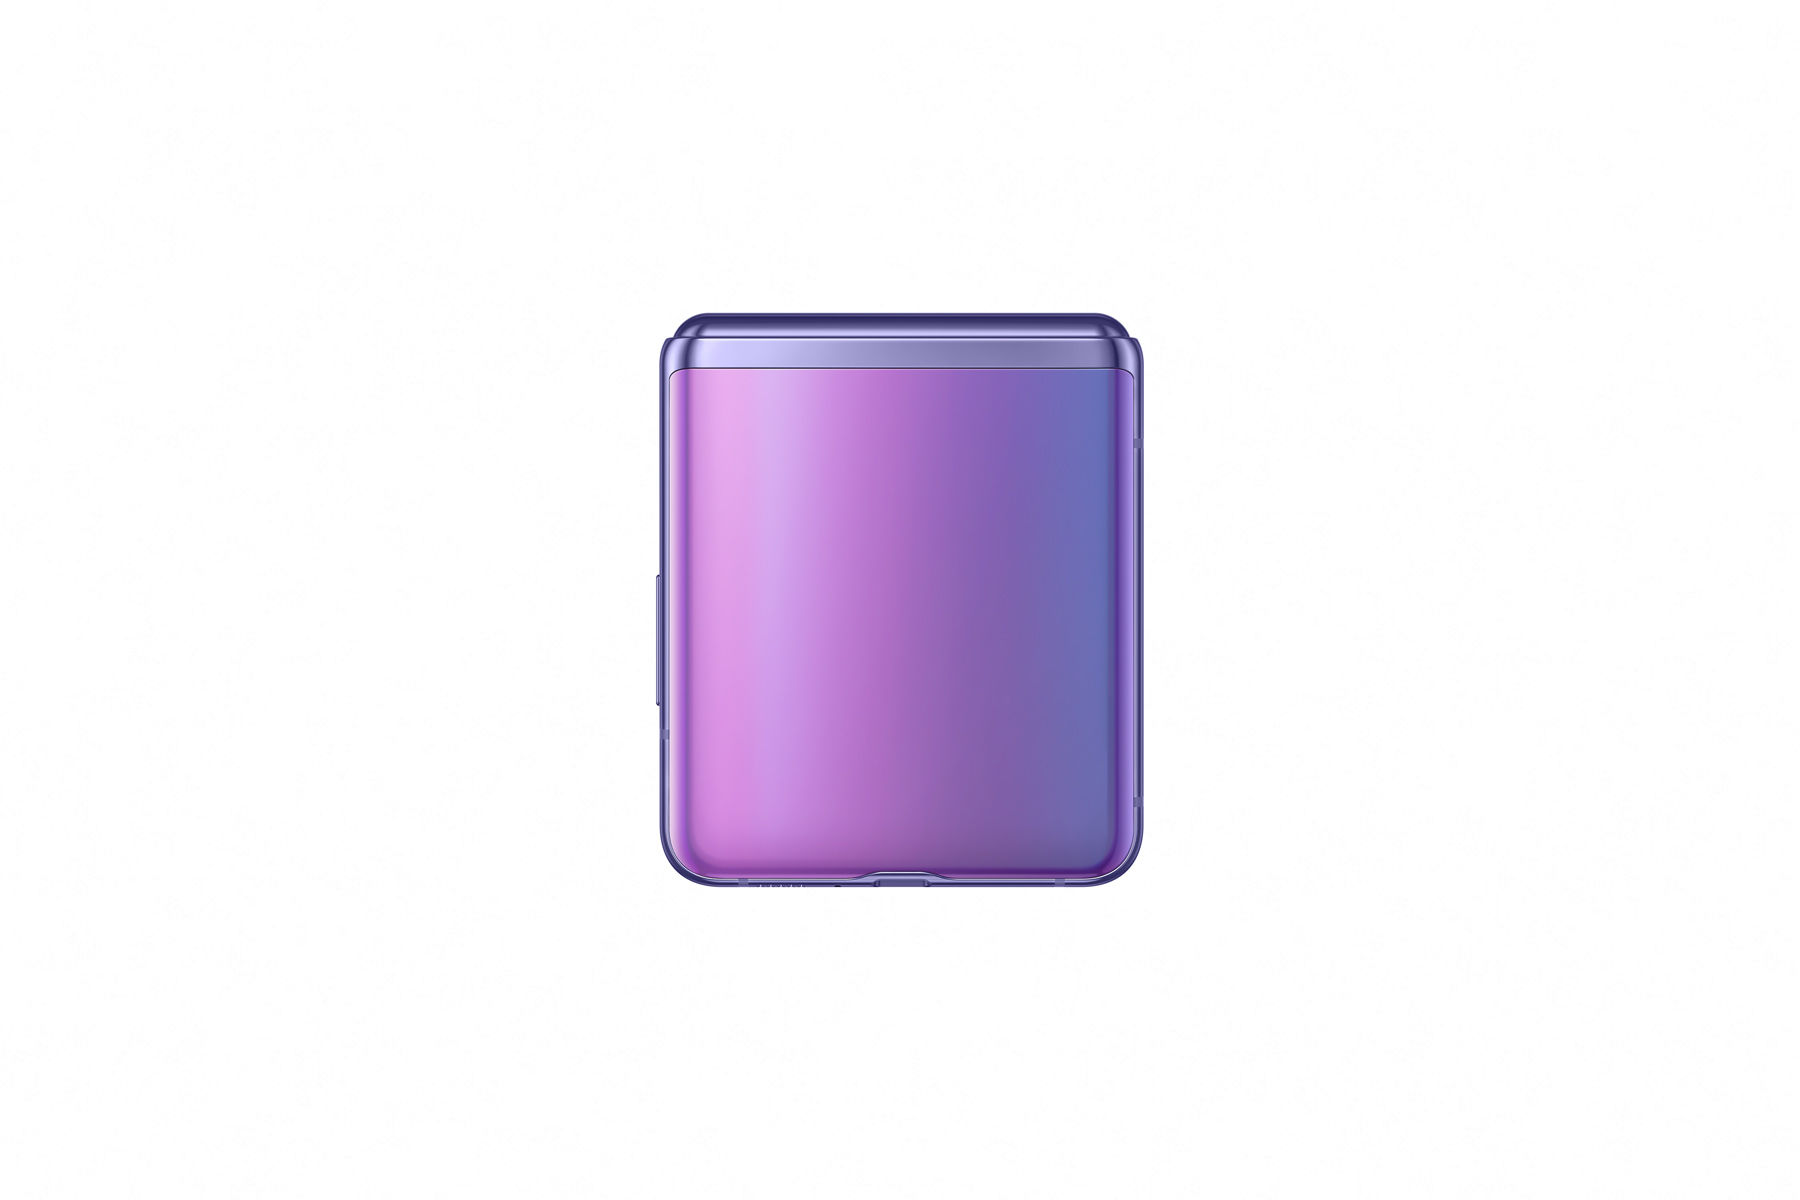 001_galaxyzflip_mirror_purple_folded_back.jpg